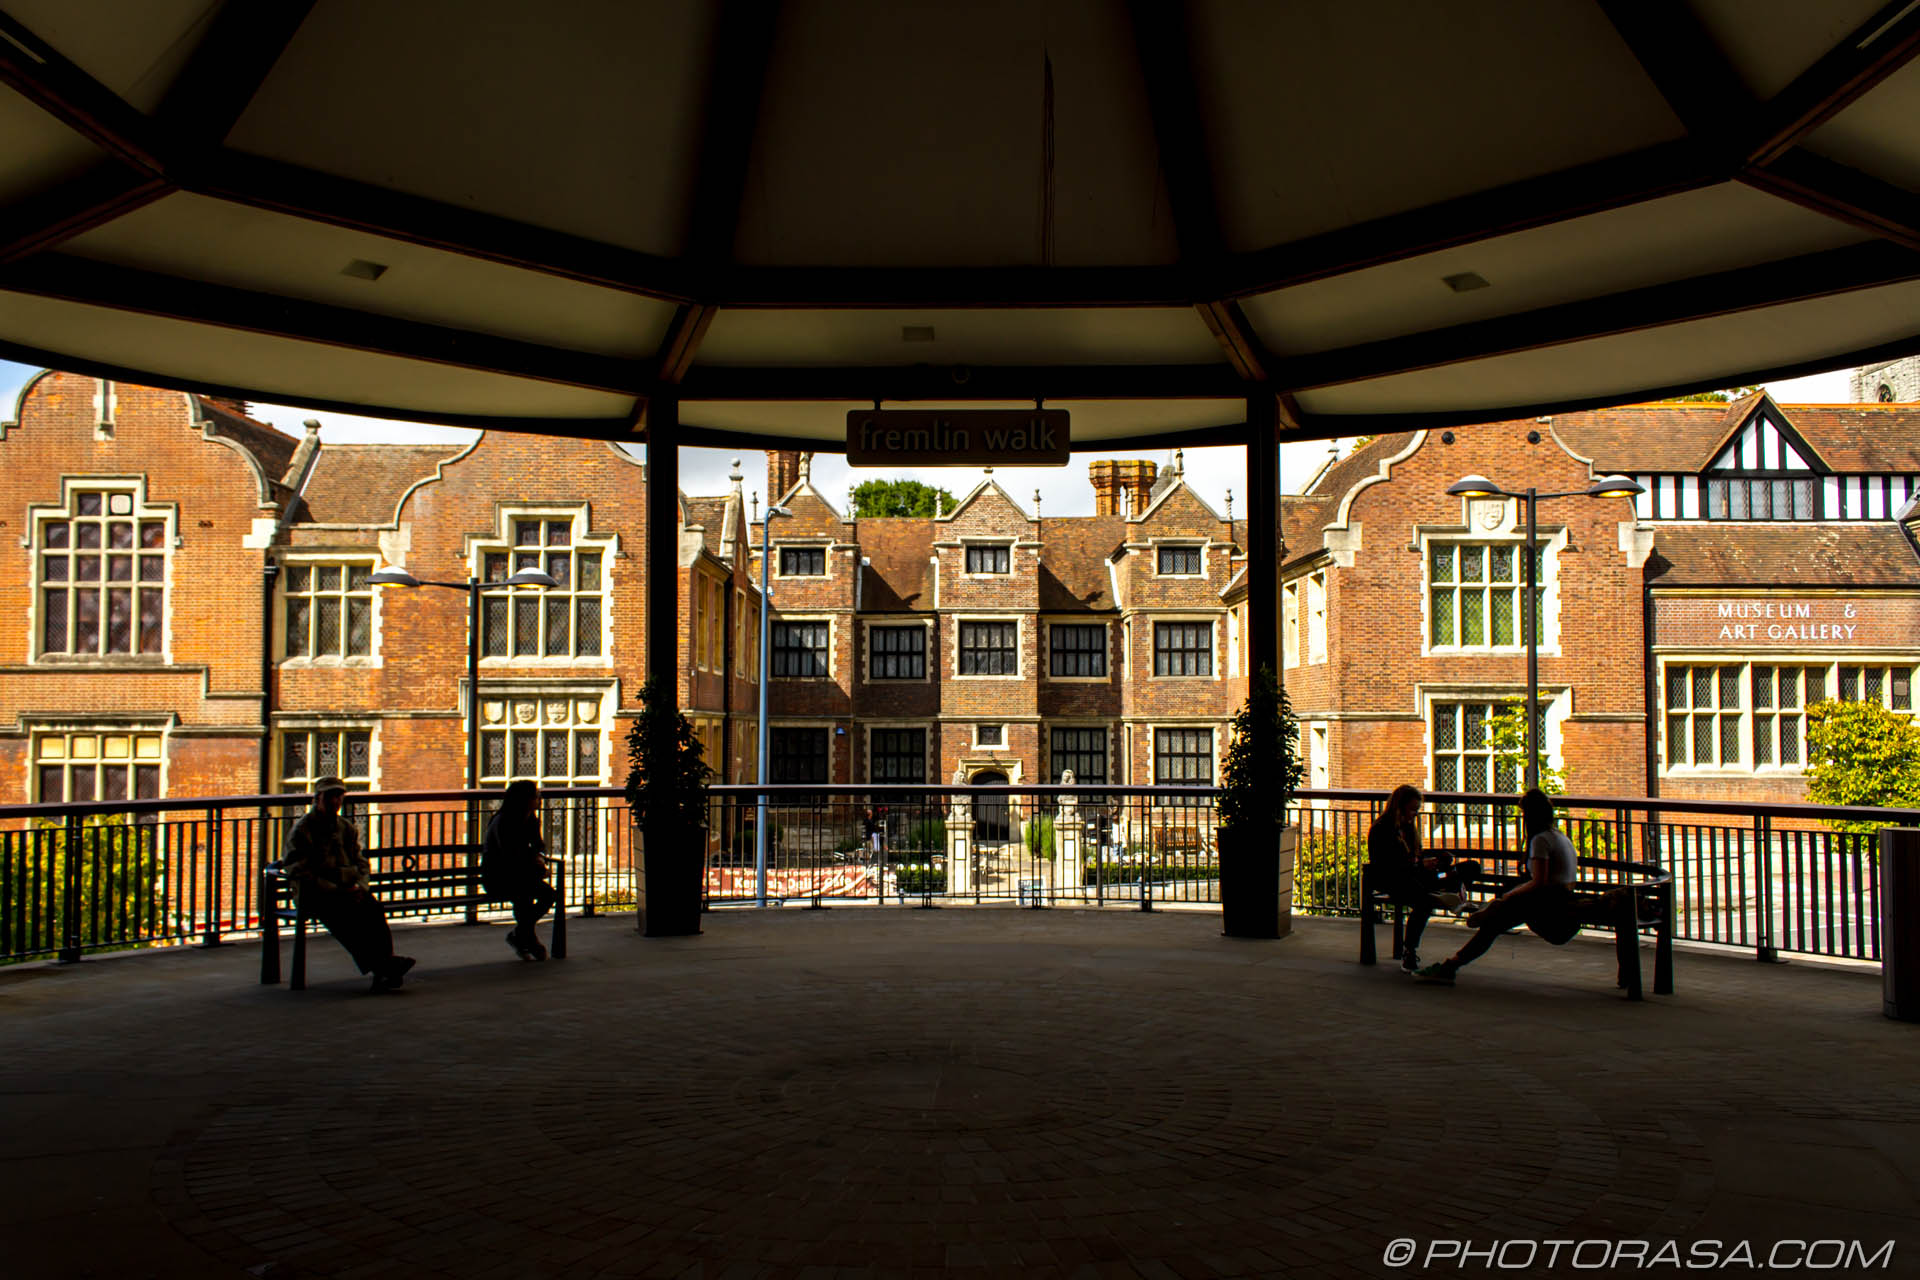 http://photorasa.com/places/maidstone/attachment/maidstone-museum-from-fremlin-walk/